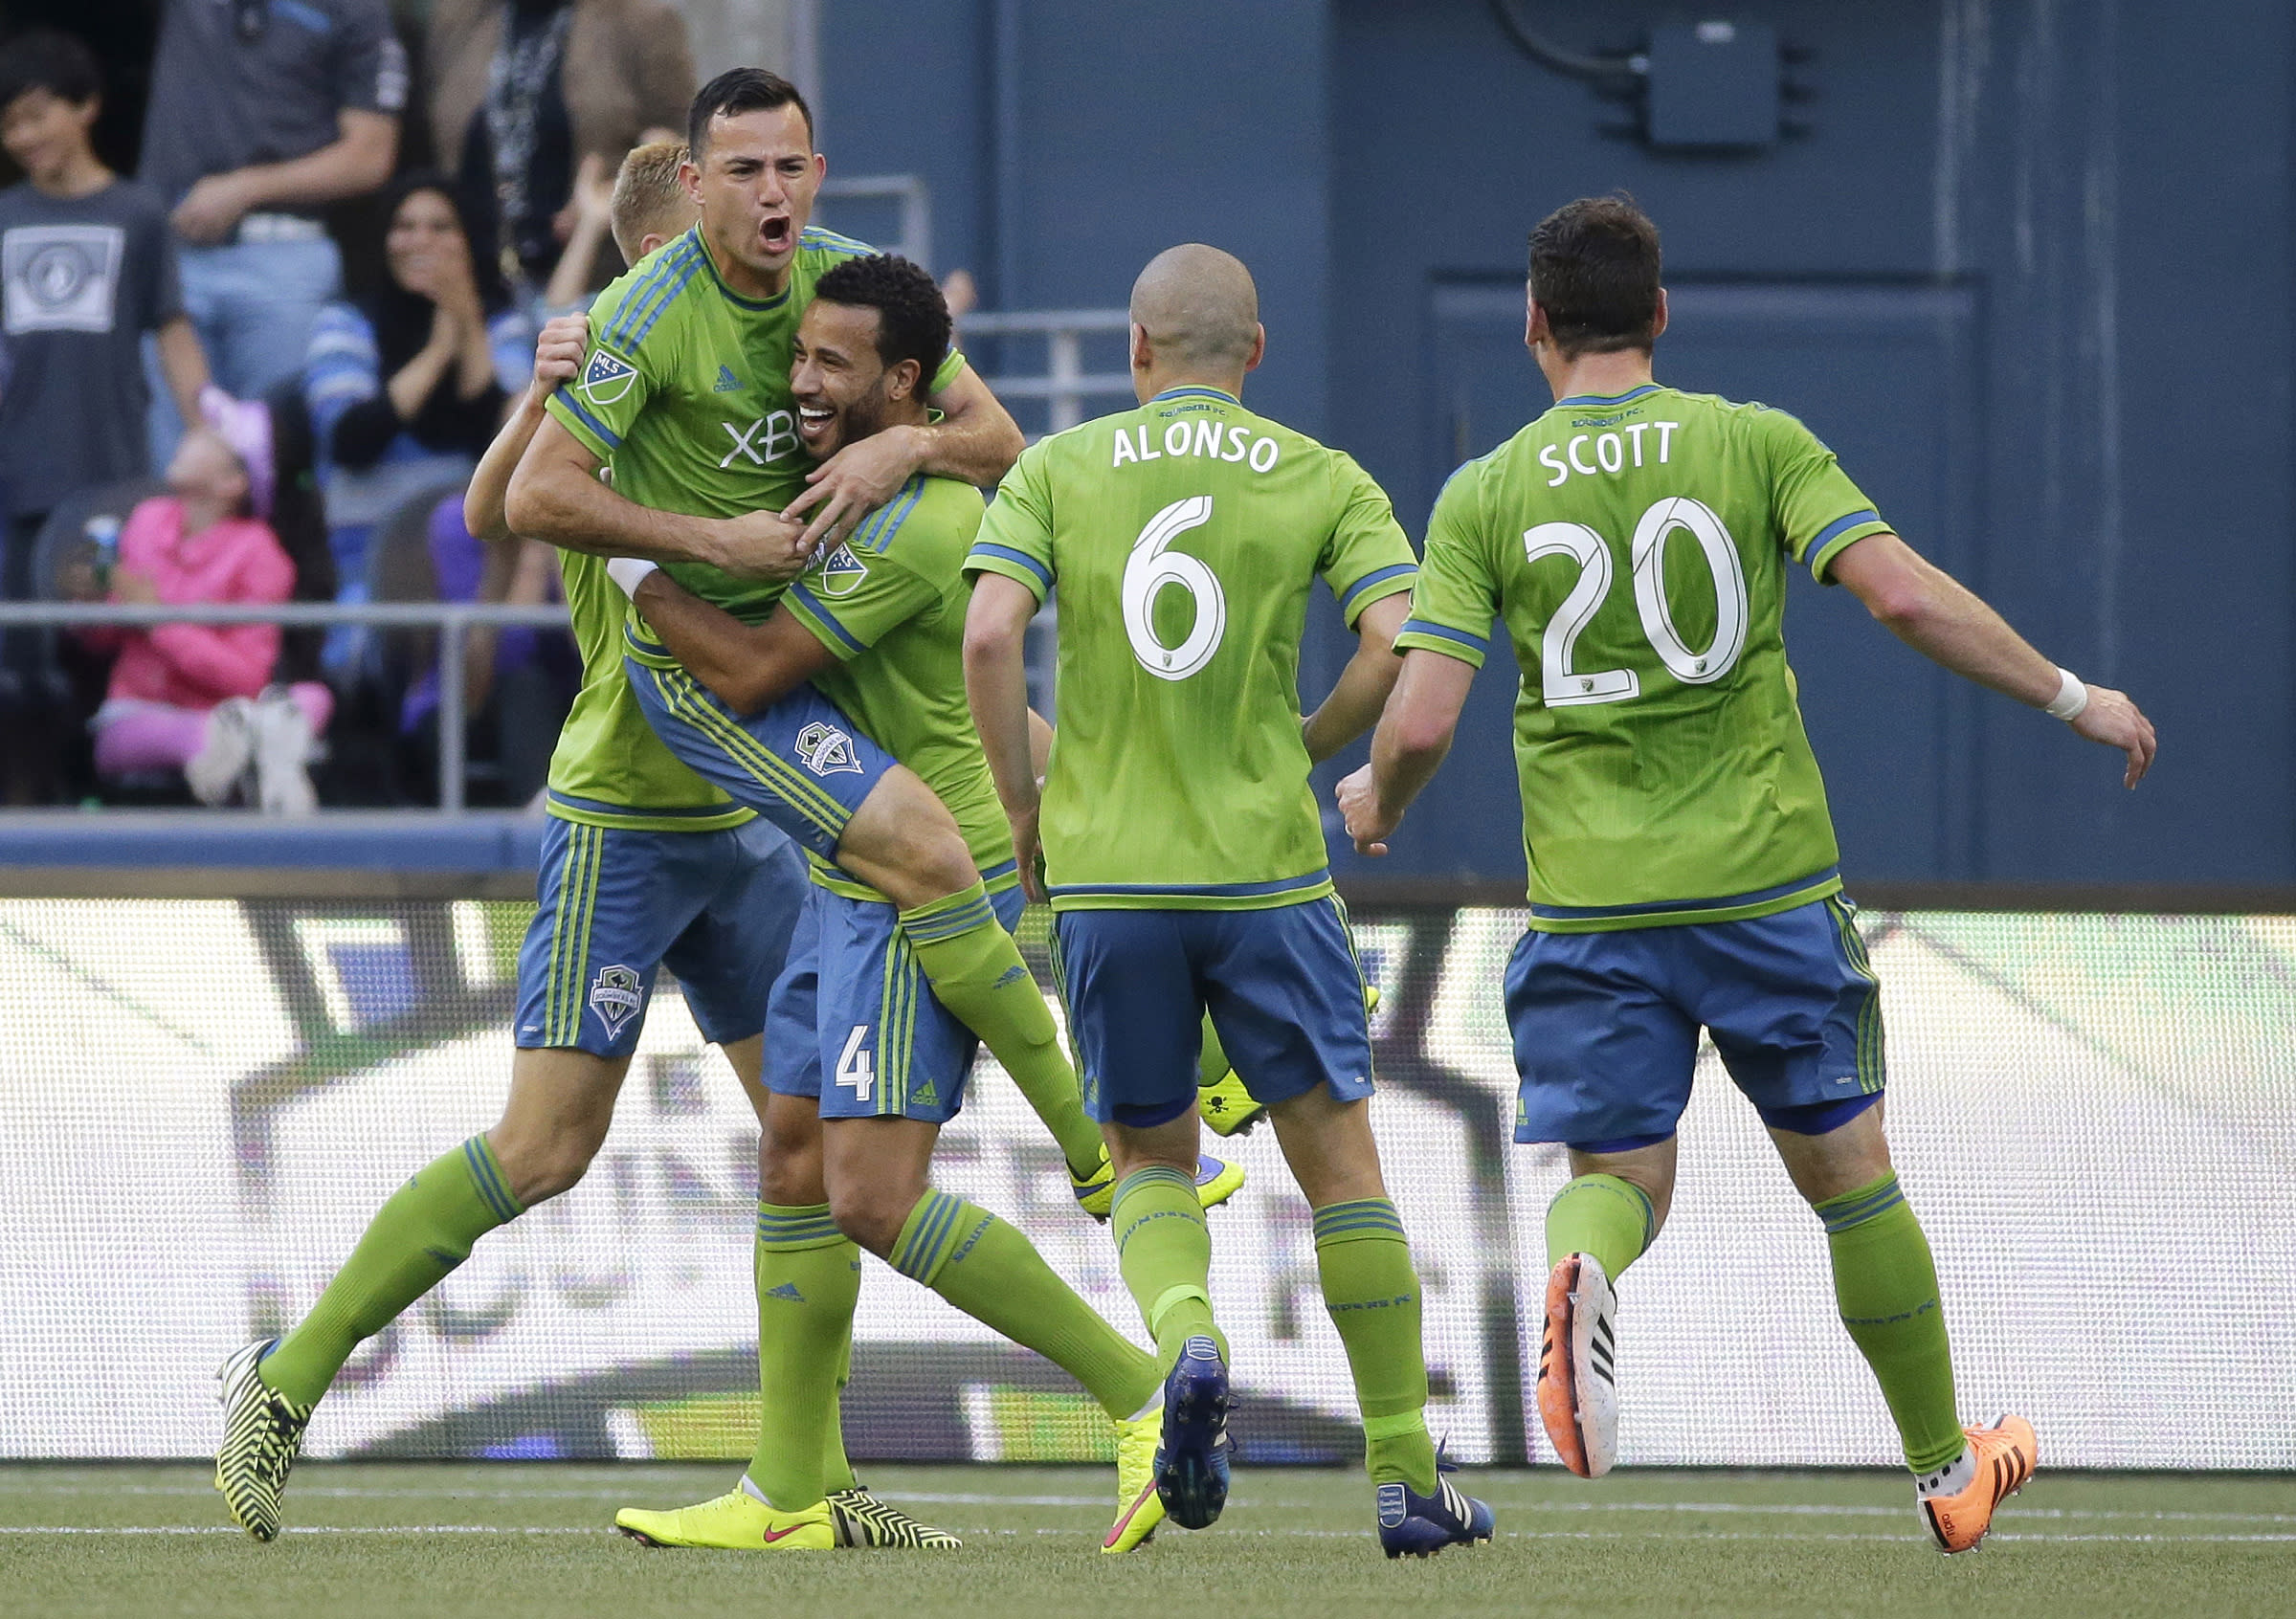 Seattle takes over top spot in West by beating Colorado 1-0